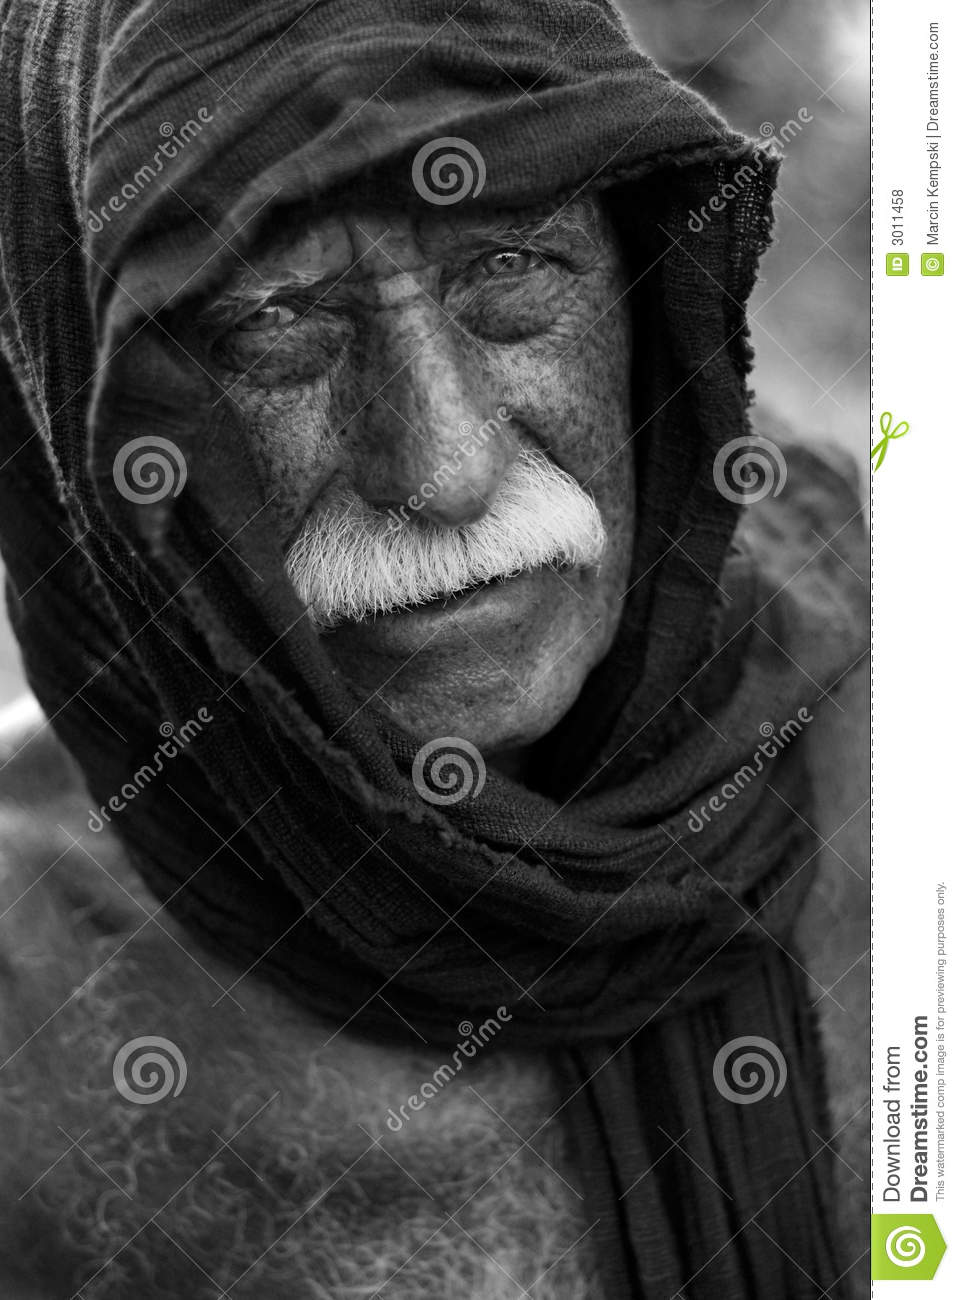 Old Homeless Man Royalty Free Stock Photos Image 3011458